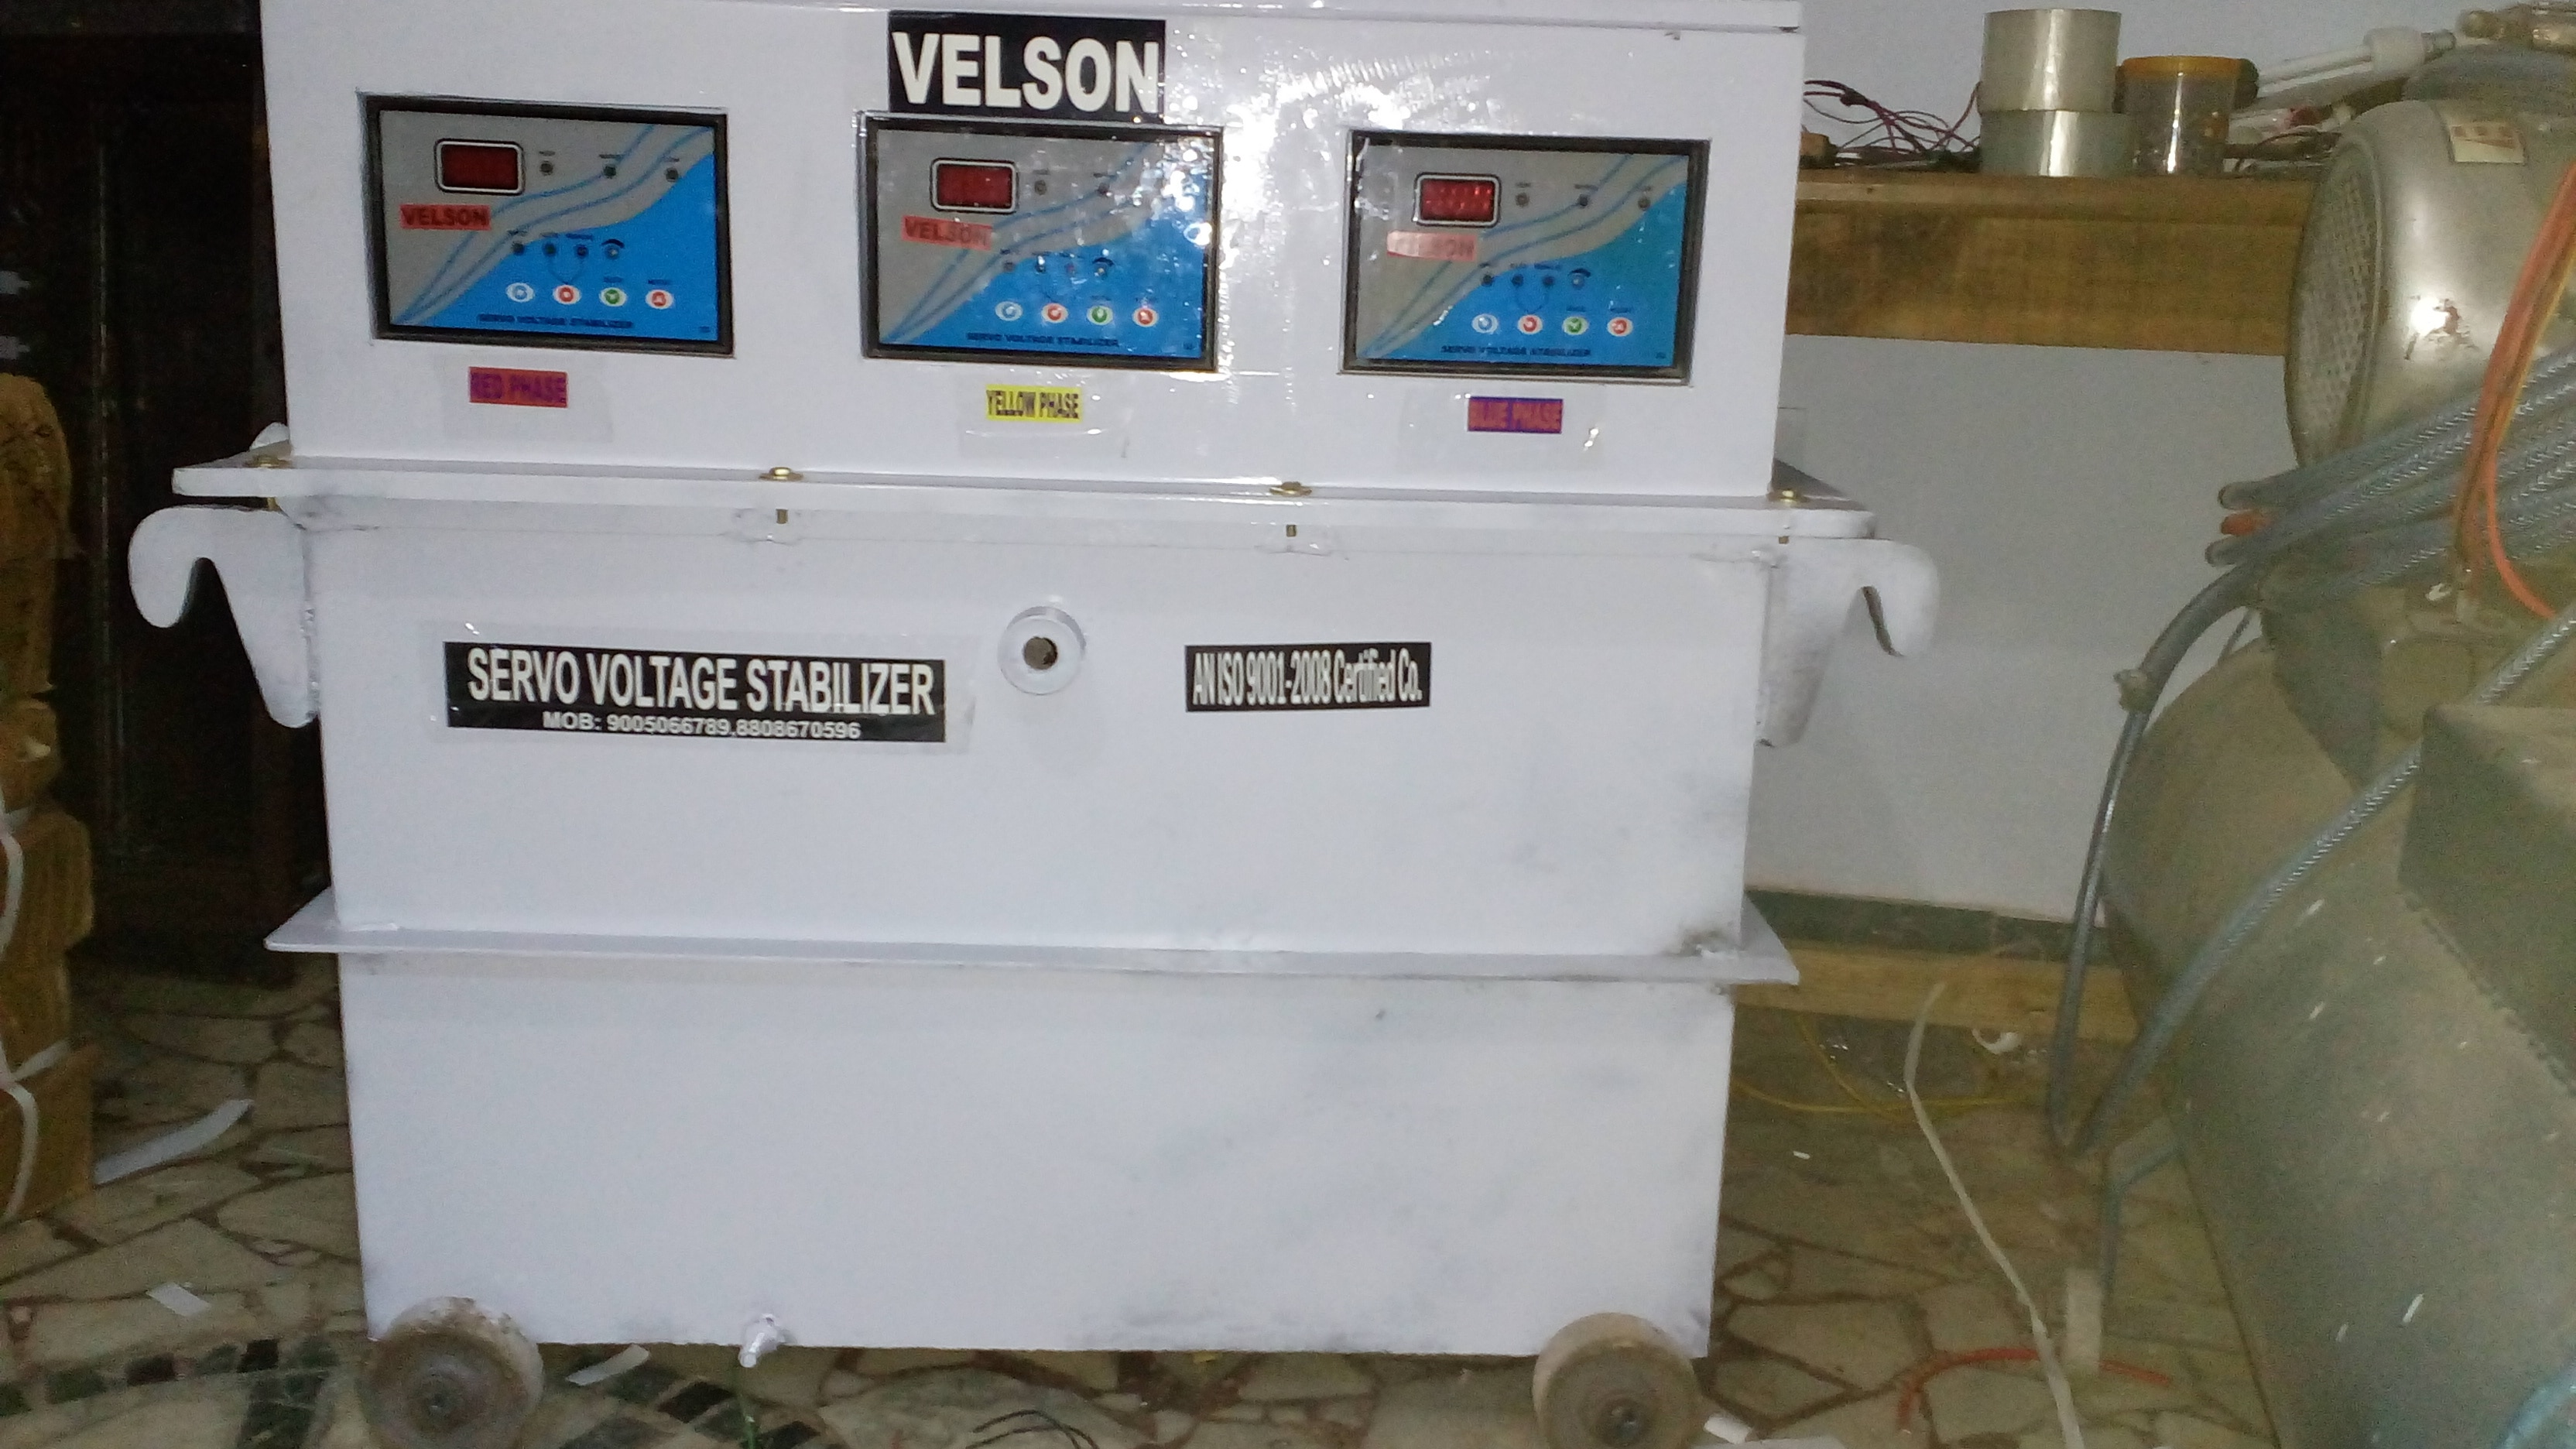 Servo Voltage Stabilizer traders in kanpur | Electric Voltage Stabilizer traders in kanpur | Servo Stabilizer traders in kanpur Servo Voltage Stabilizer Dealers in Kanpur and get best multiple price quotes from Voltage Stabilizer in Kanpur /Velson Instruments Services CC No. 9336485792